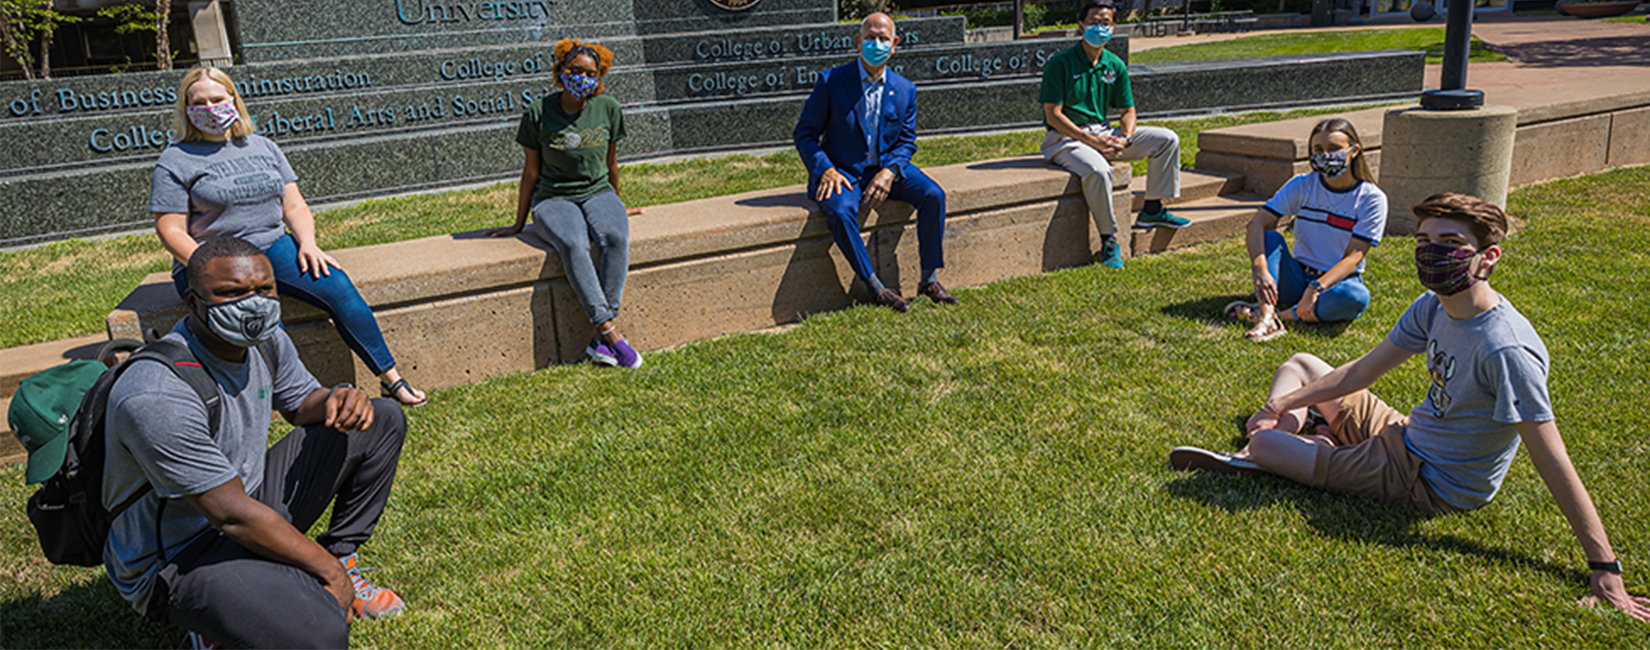 Cleveland State U students in outdoor classroom setting.